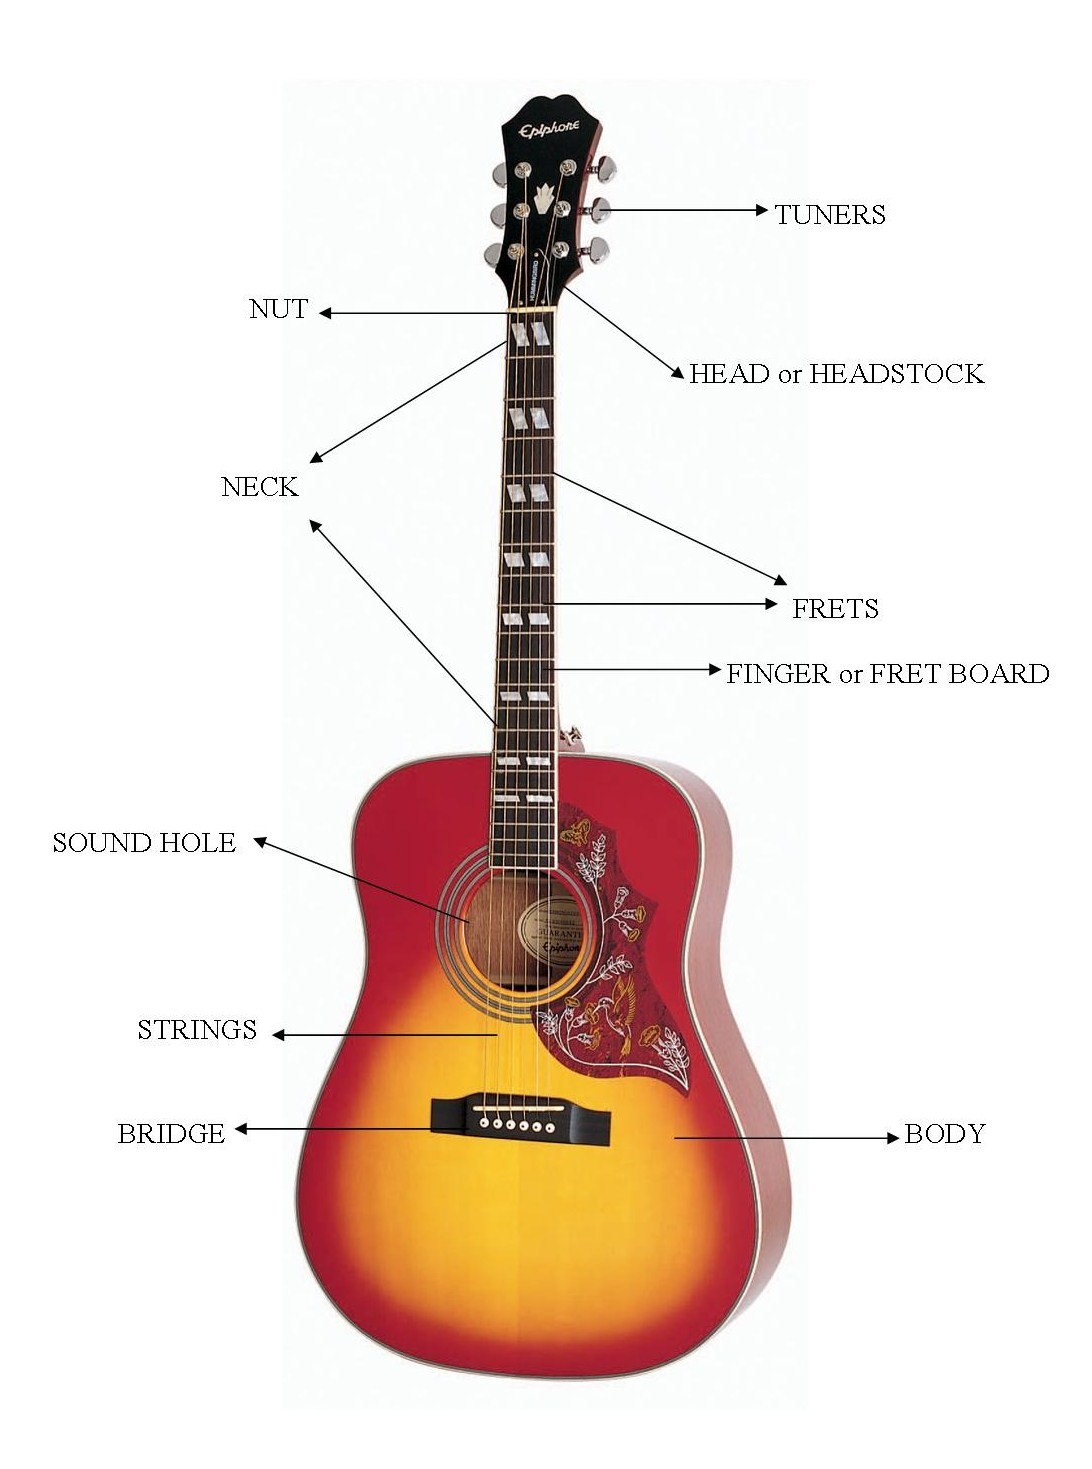 Classical Guitar Parts Diagram Pictures to Pin on Pinterest ...